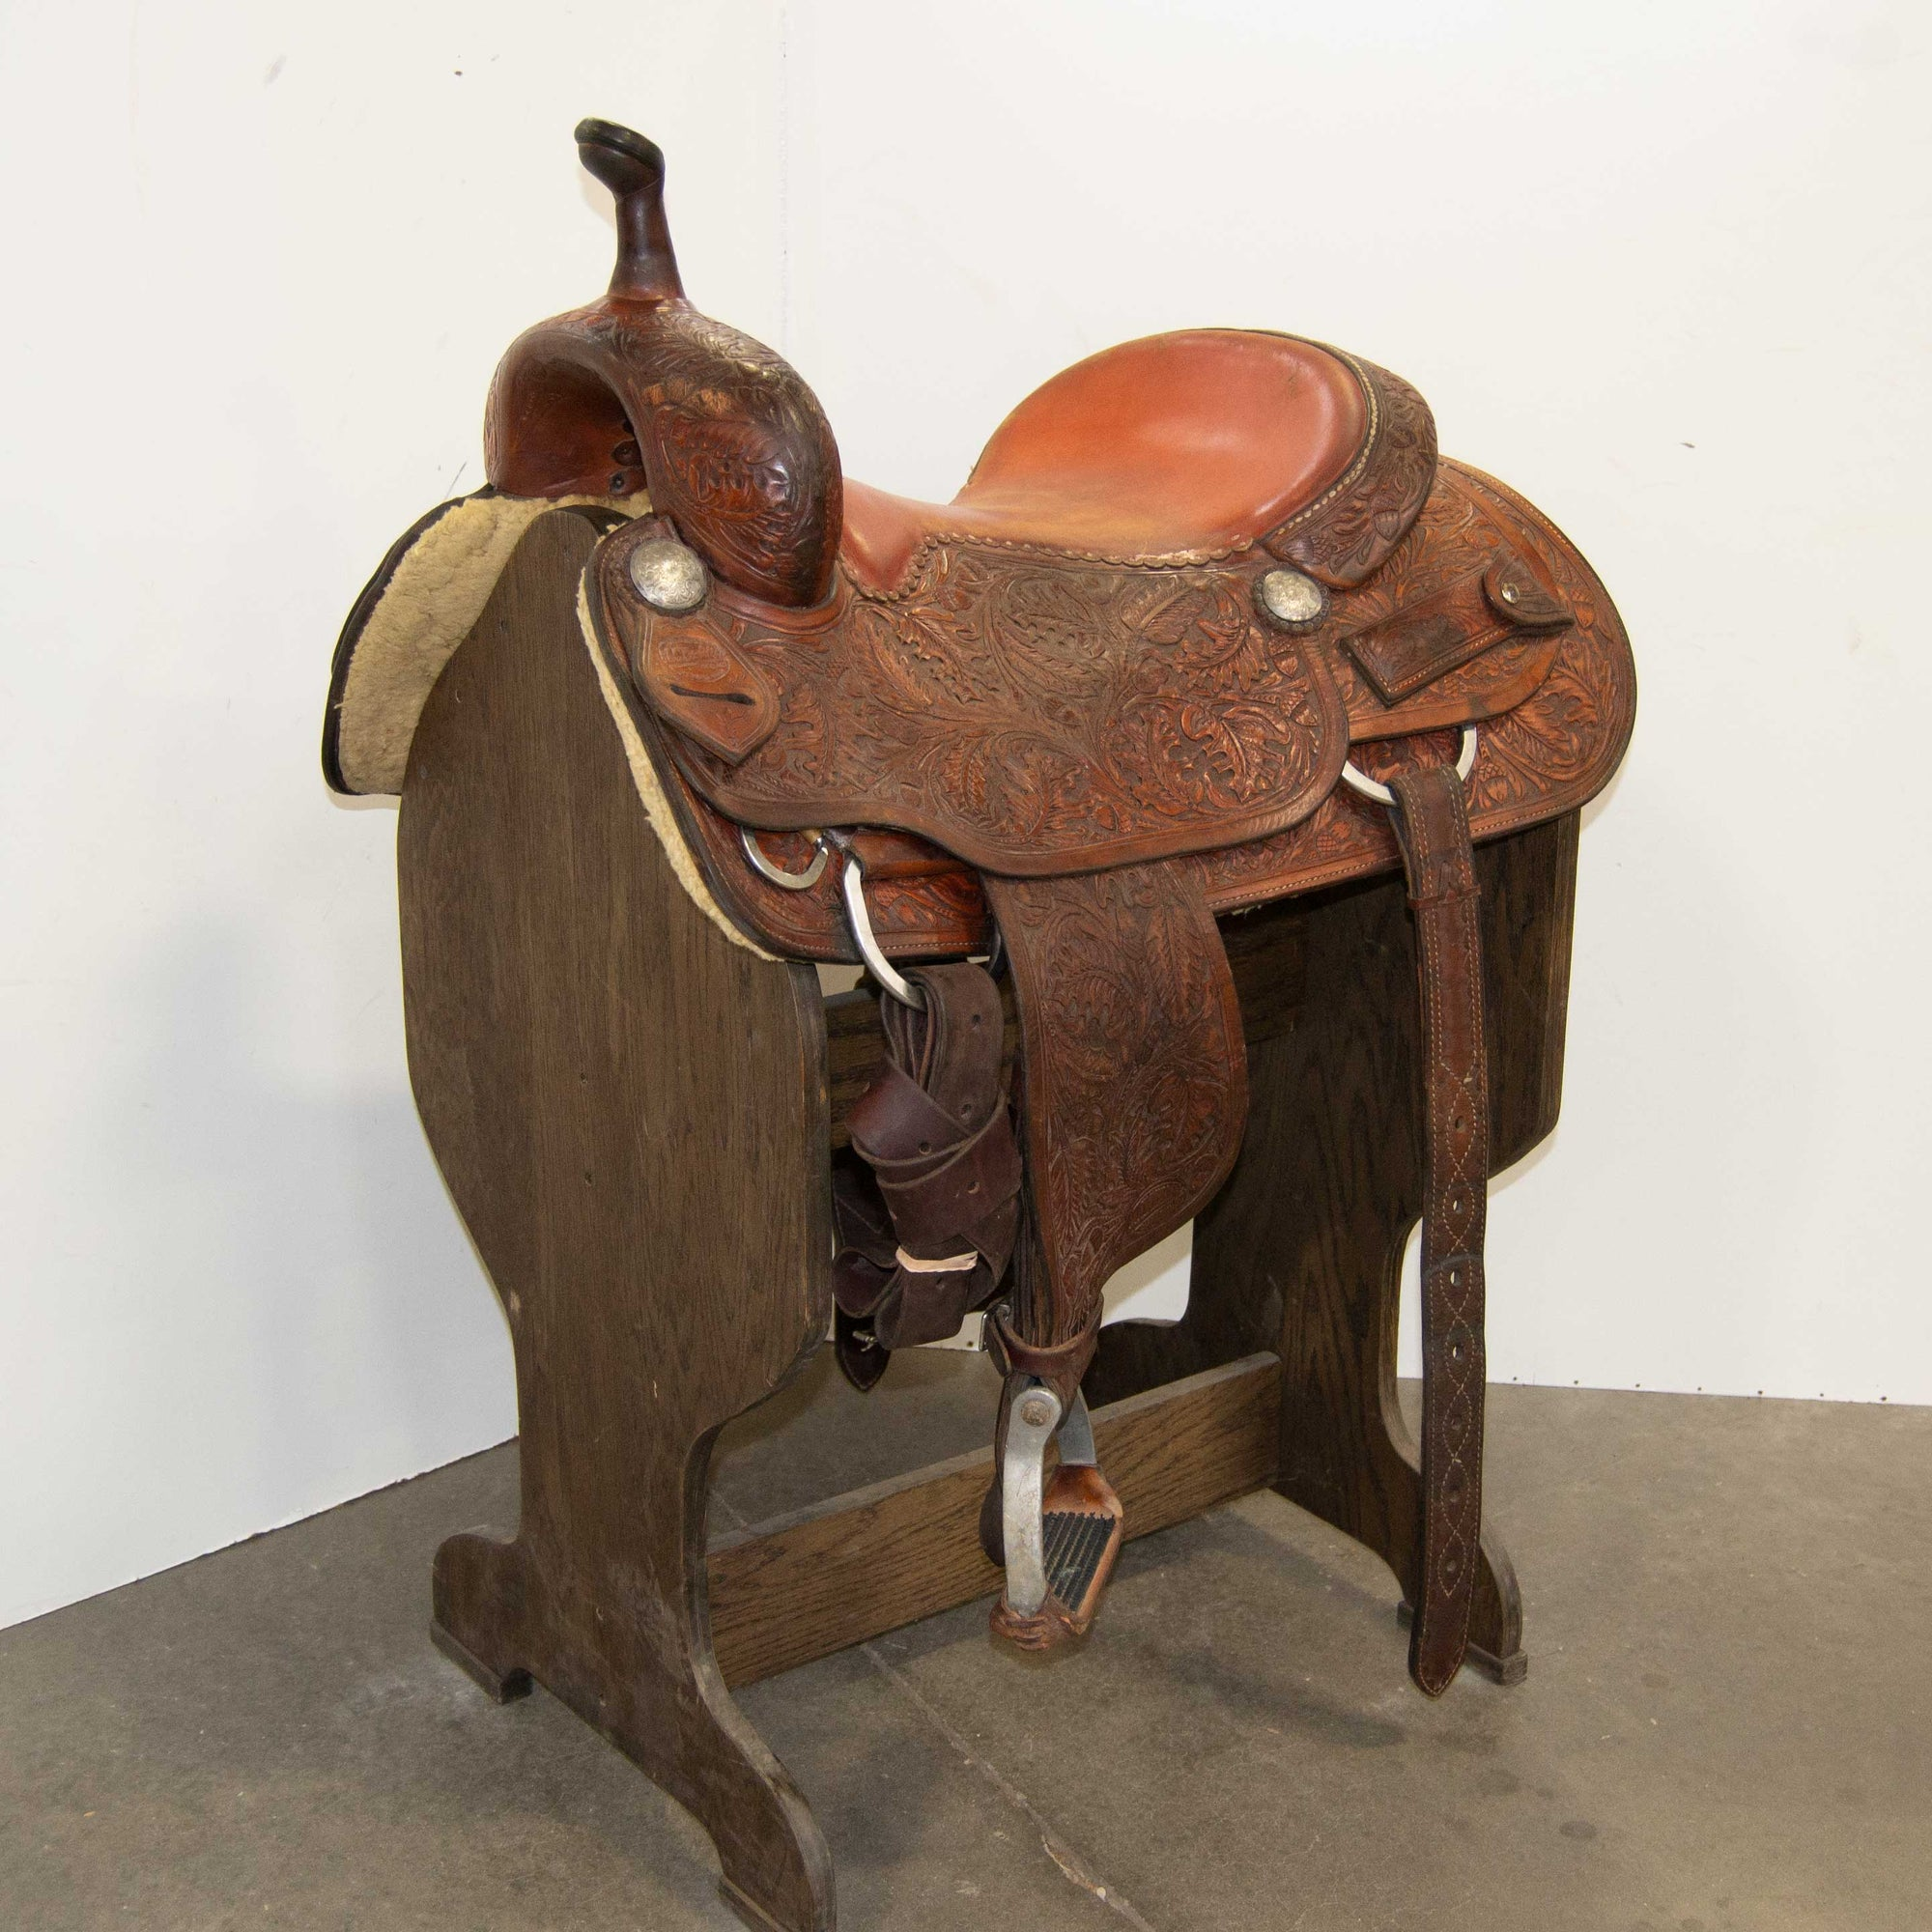 "16.5"" USED M.L. LEDDY'S CUTTING SADDLE"